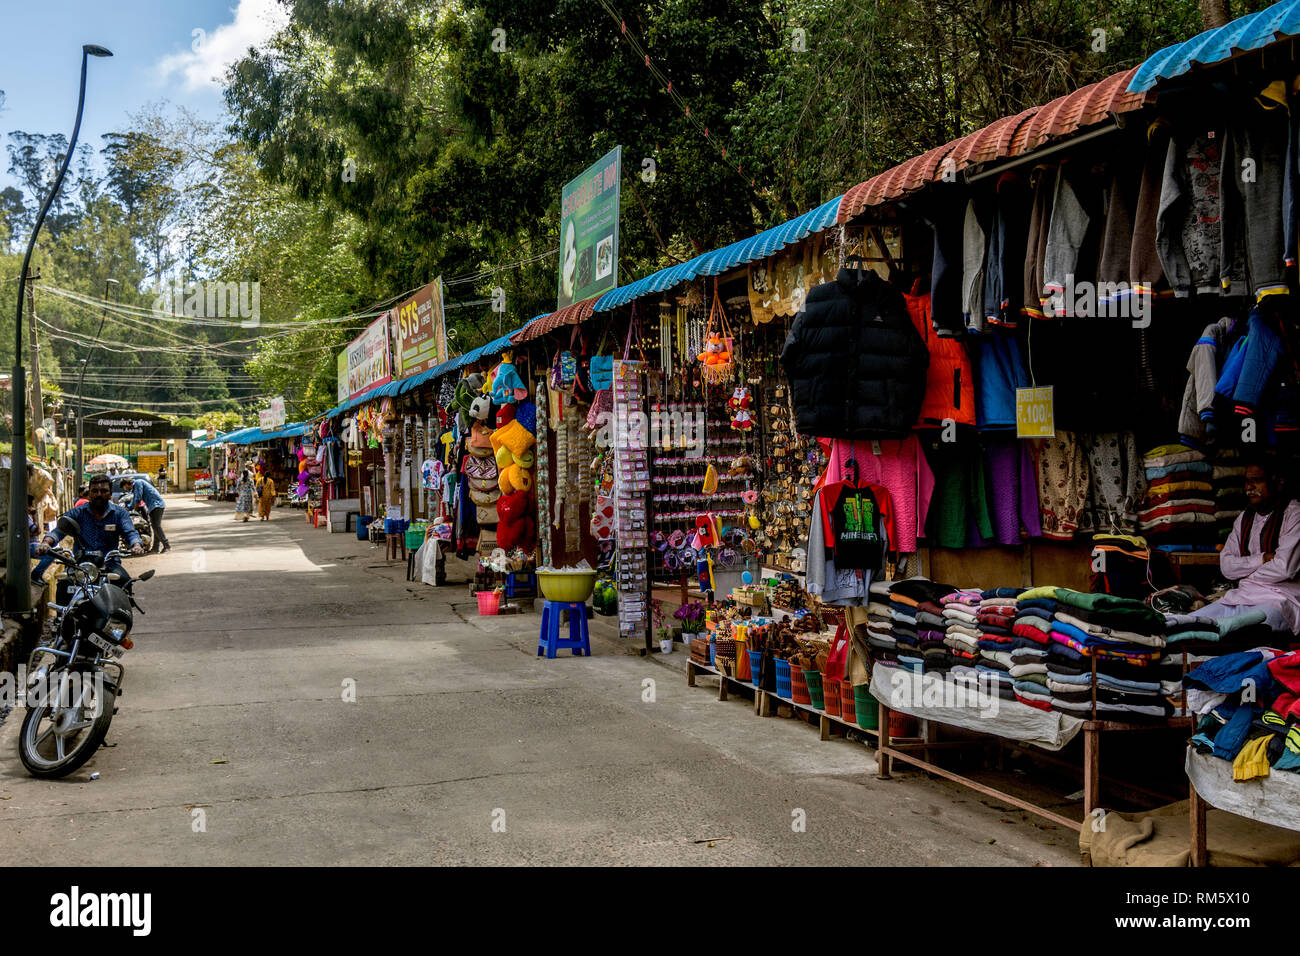 Shops selling garments, Kodaikanal, Tamil Nadu, India, Asia - Stock Image